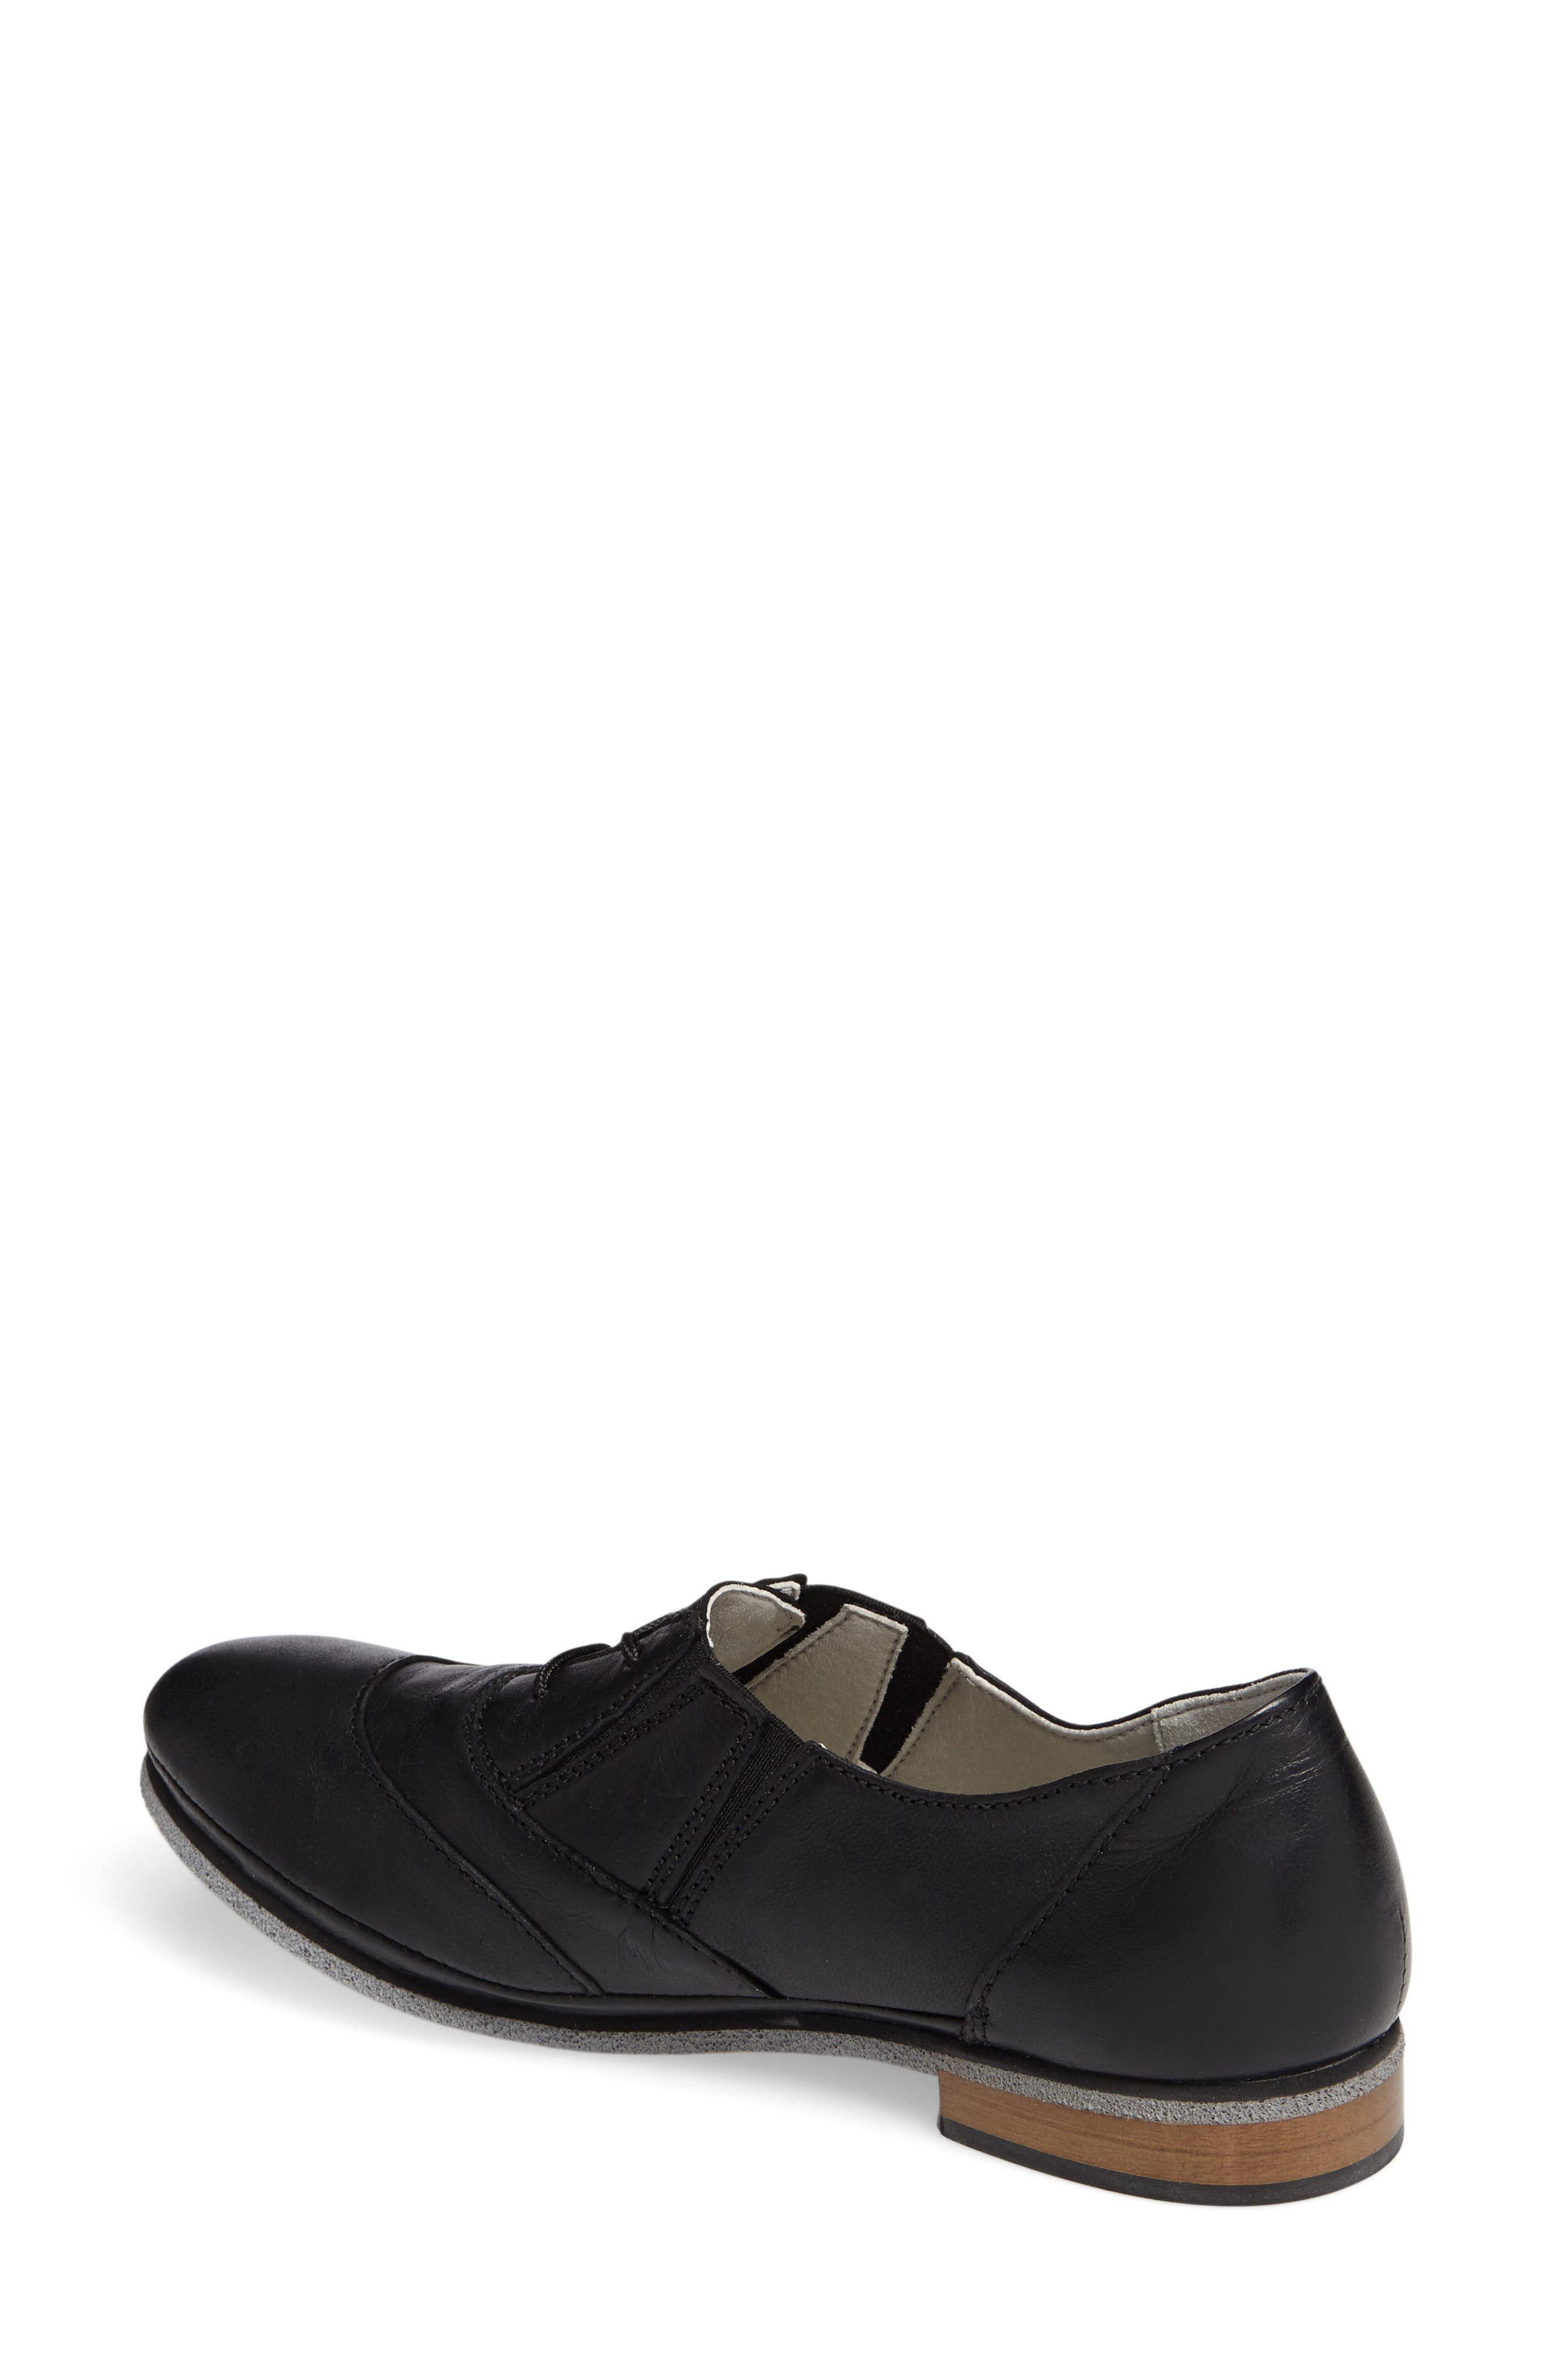 Bliss Lace-Up Oxford,                             Alternate thumbnail 2, color,                             001